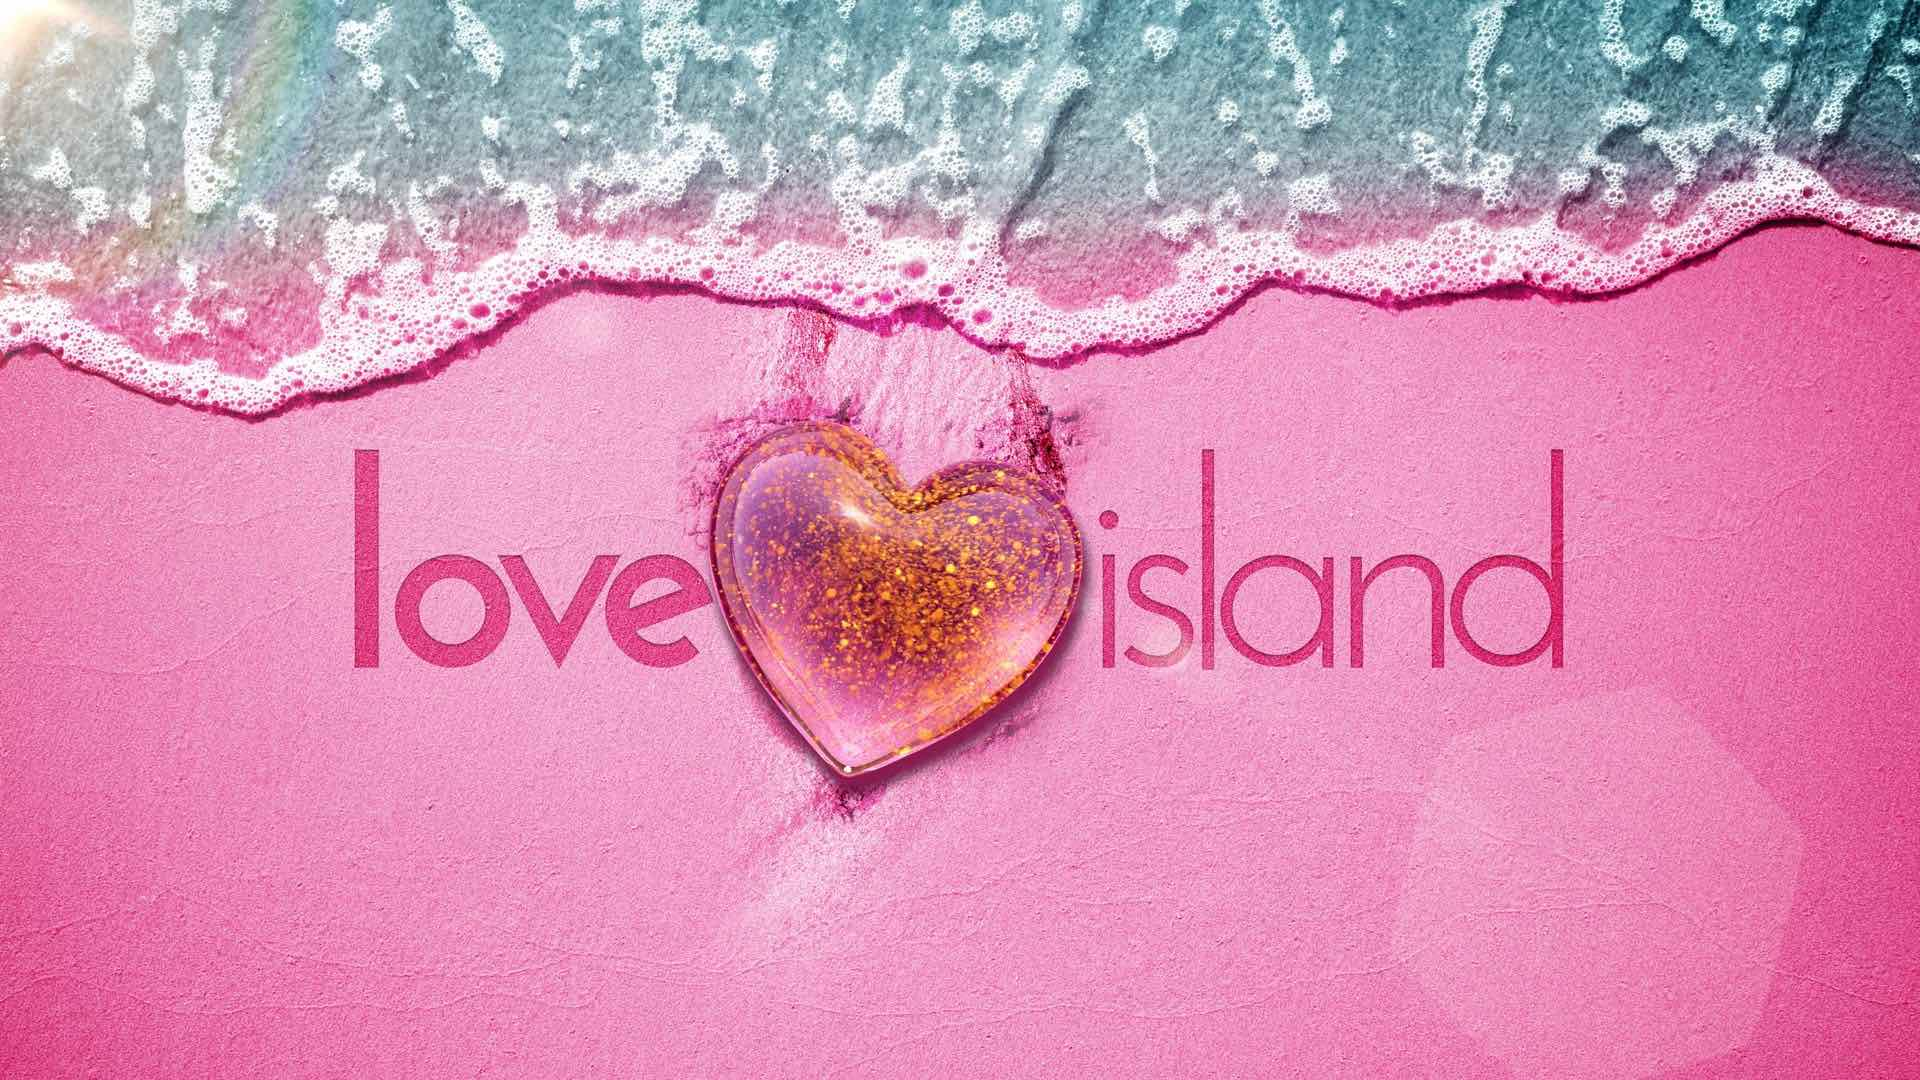 'Love Island USA' has already started airing on CBS and CBS All Access. If you want a quick who's who, here's our guide to the Islanders so far.